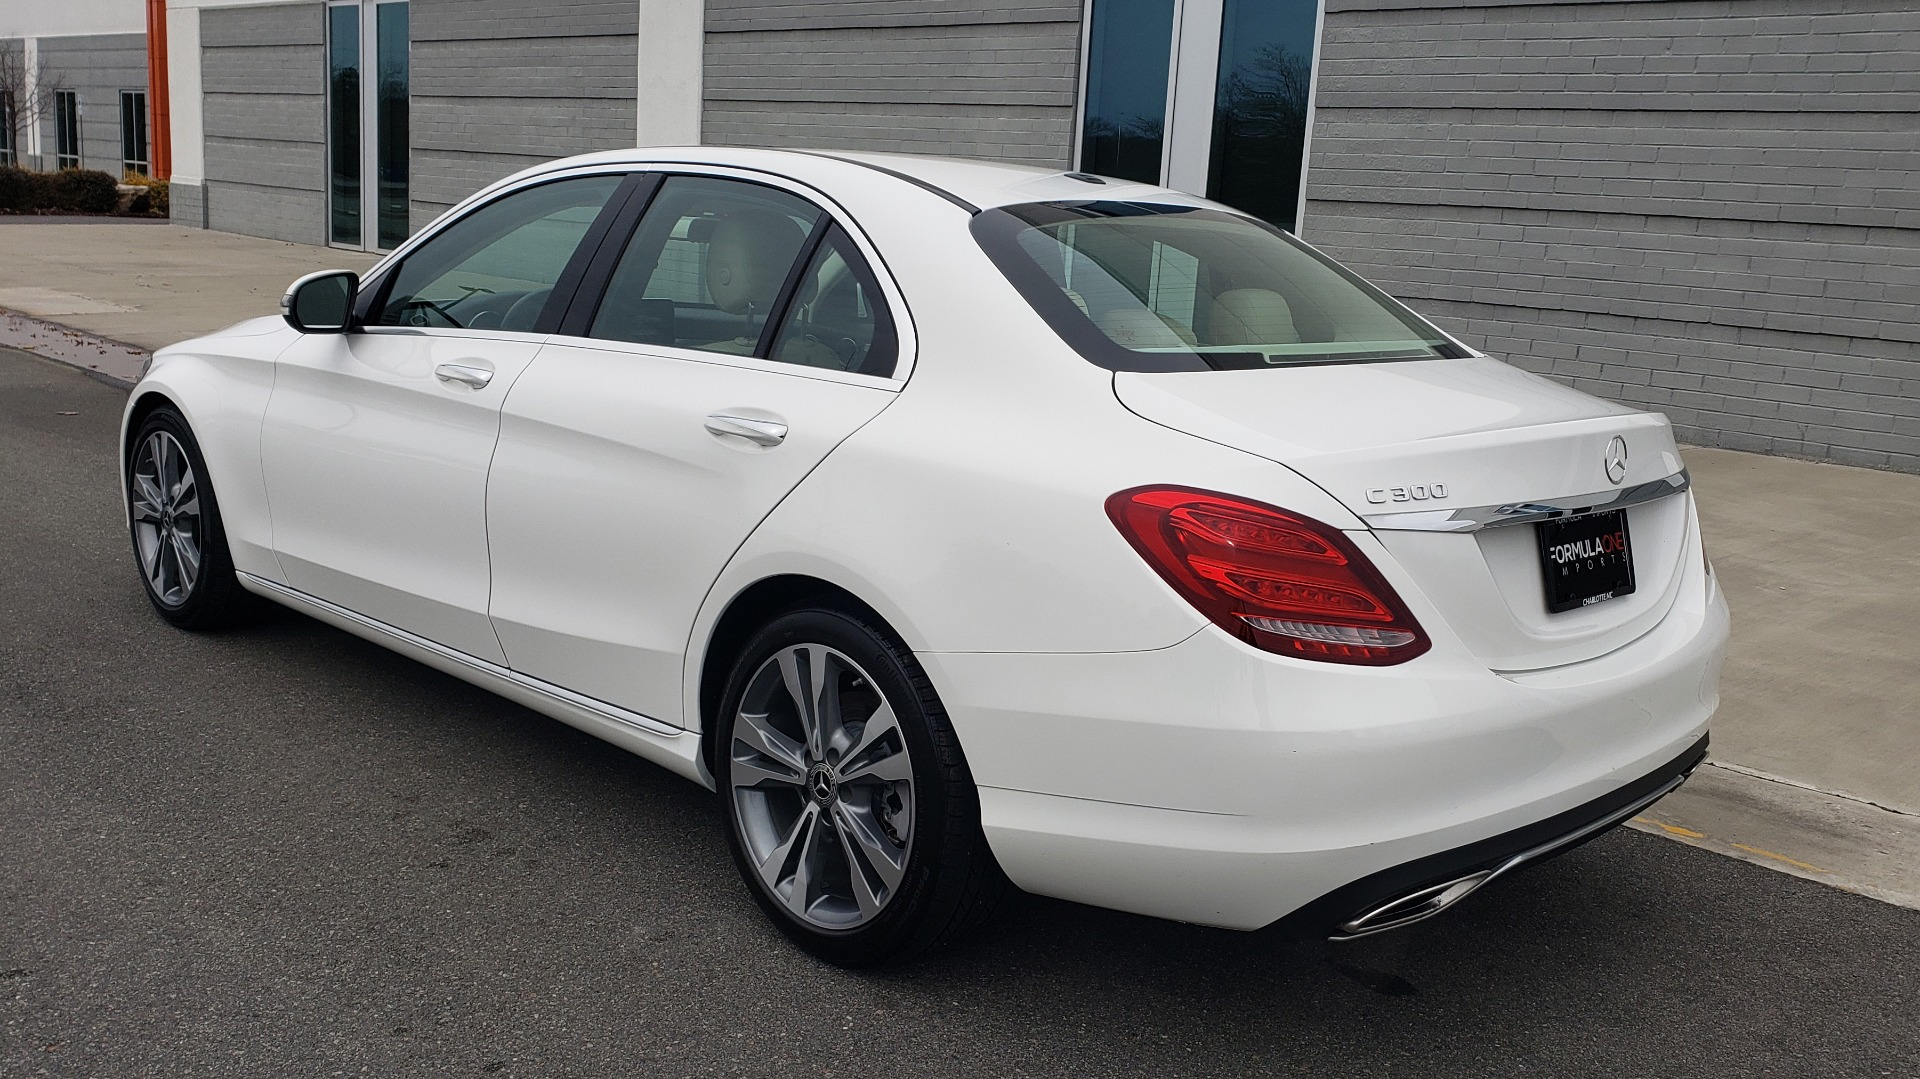 Used 2018 Mercedes-Benz C-CLASS C 300 PREMIUM / NAV / HTD STS / APPLY CARPLAY / REARVIEW for sale $26,695 at Formula Imports in Charlotte NC 28227 3